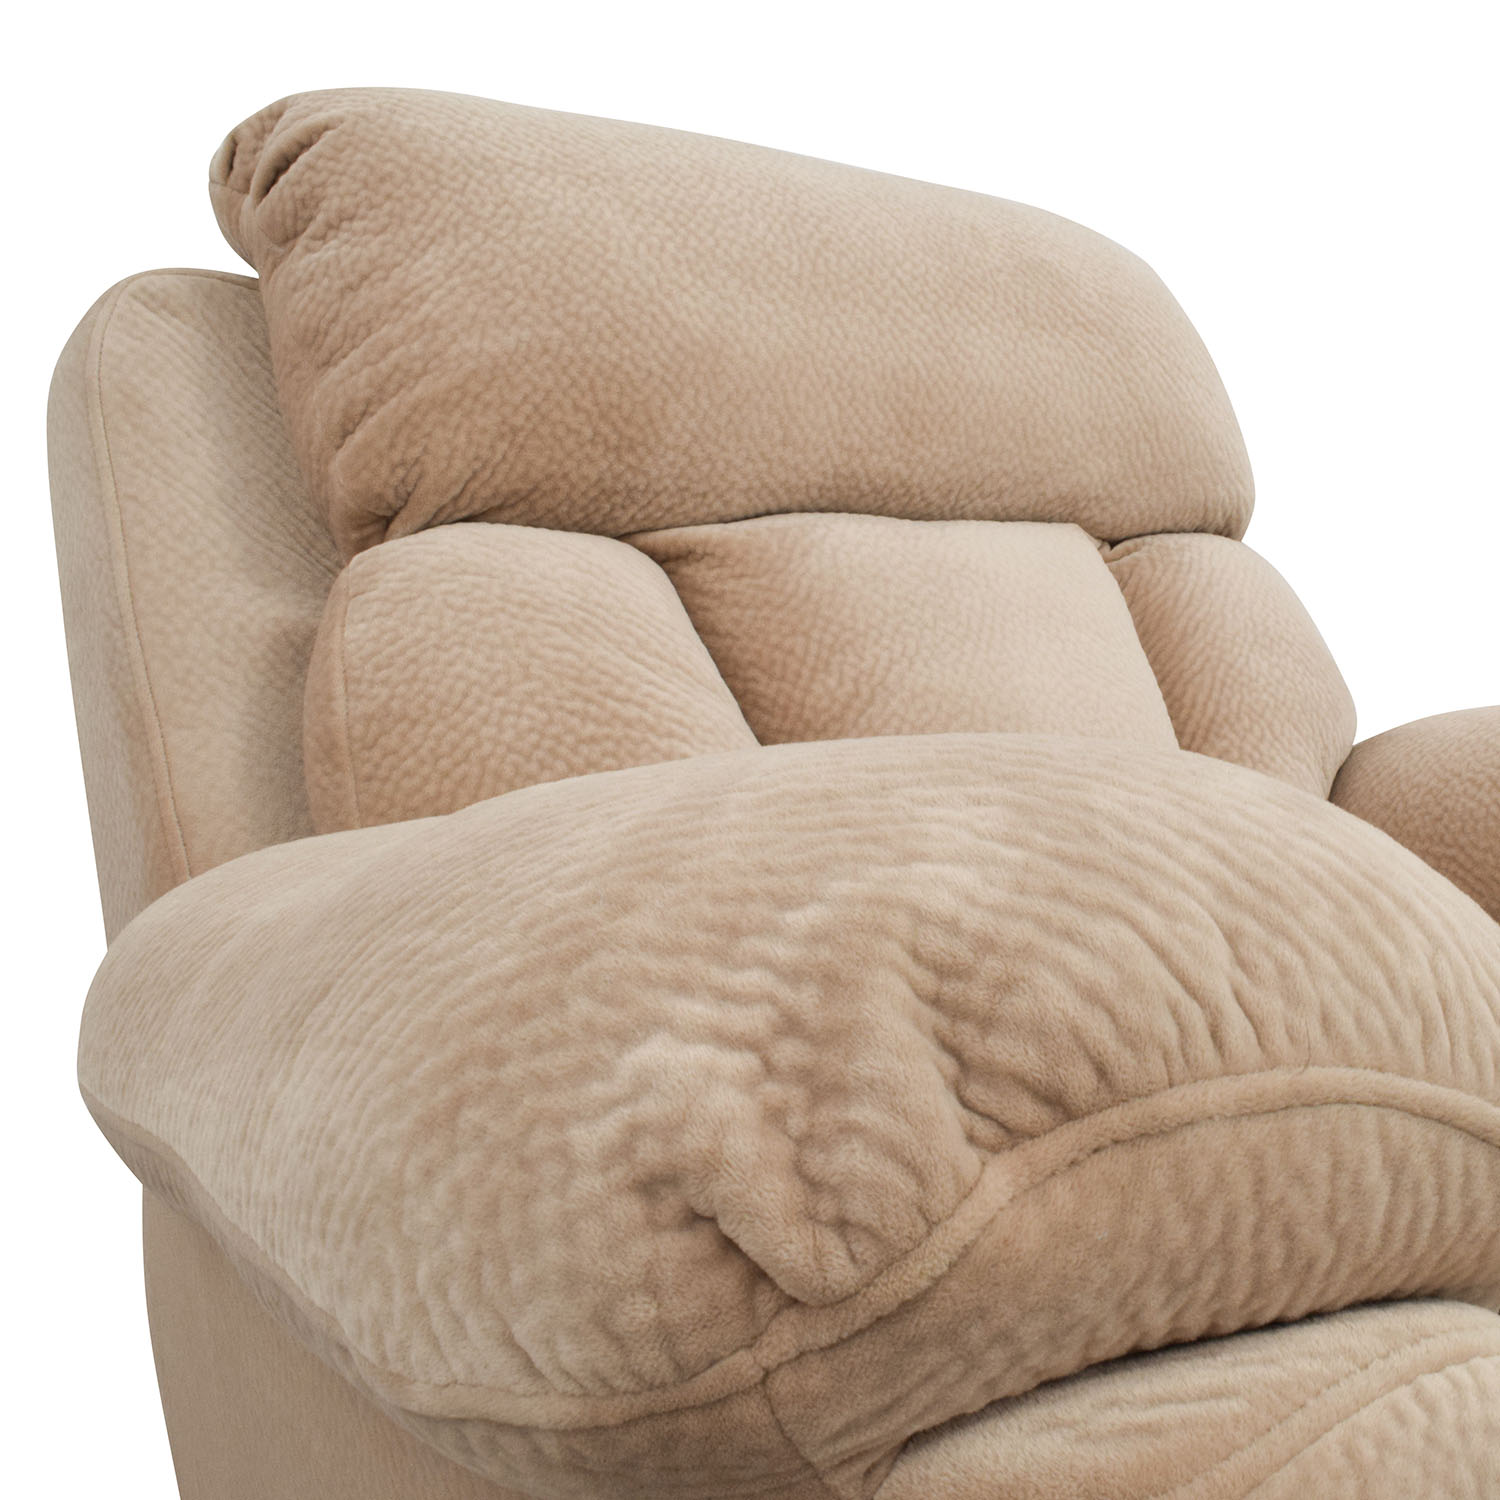 73 Off Jennifer Furniture Jennifer Furniture Beige